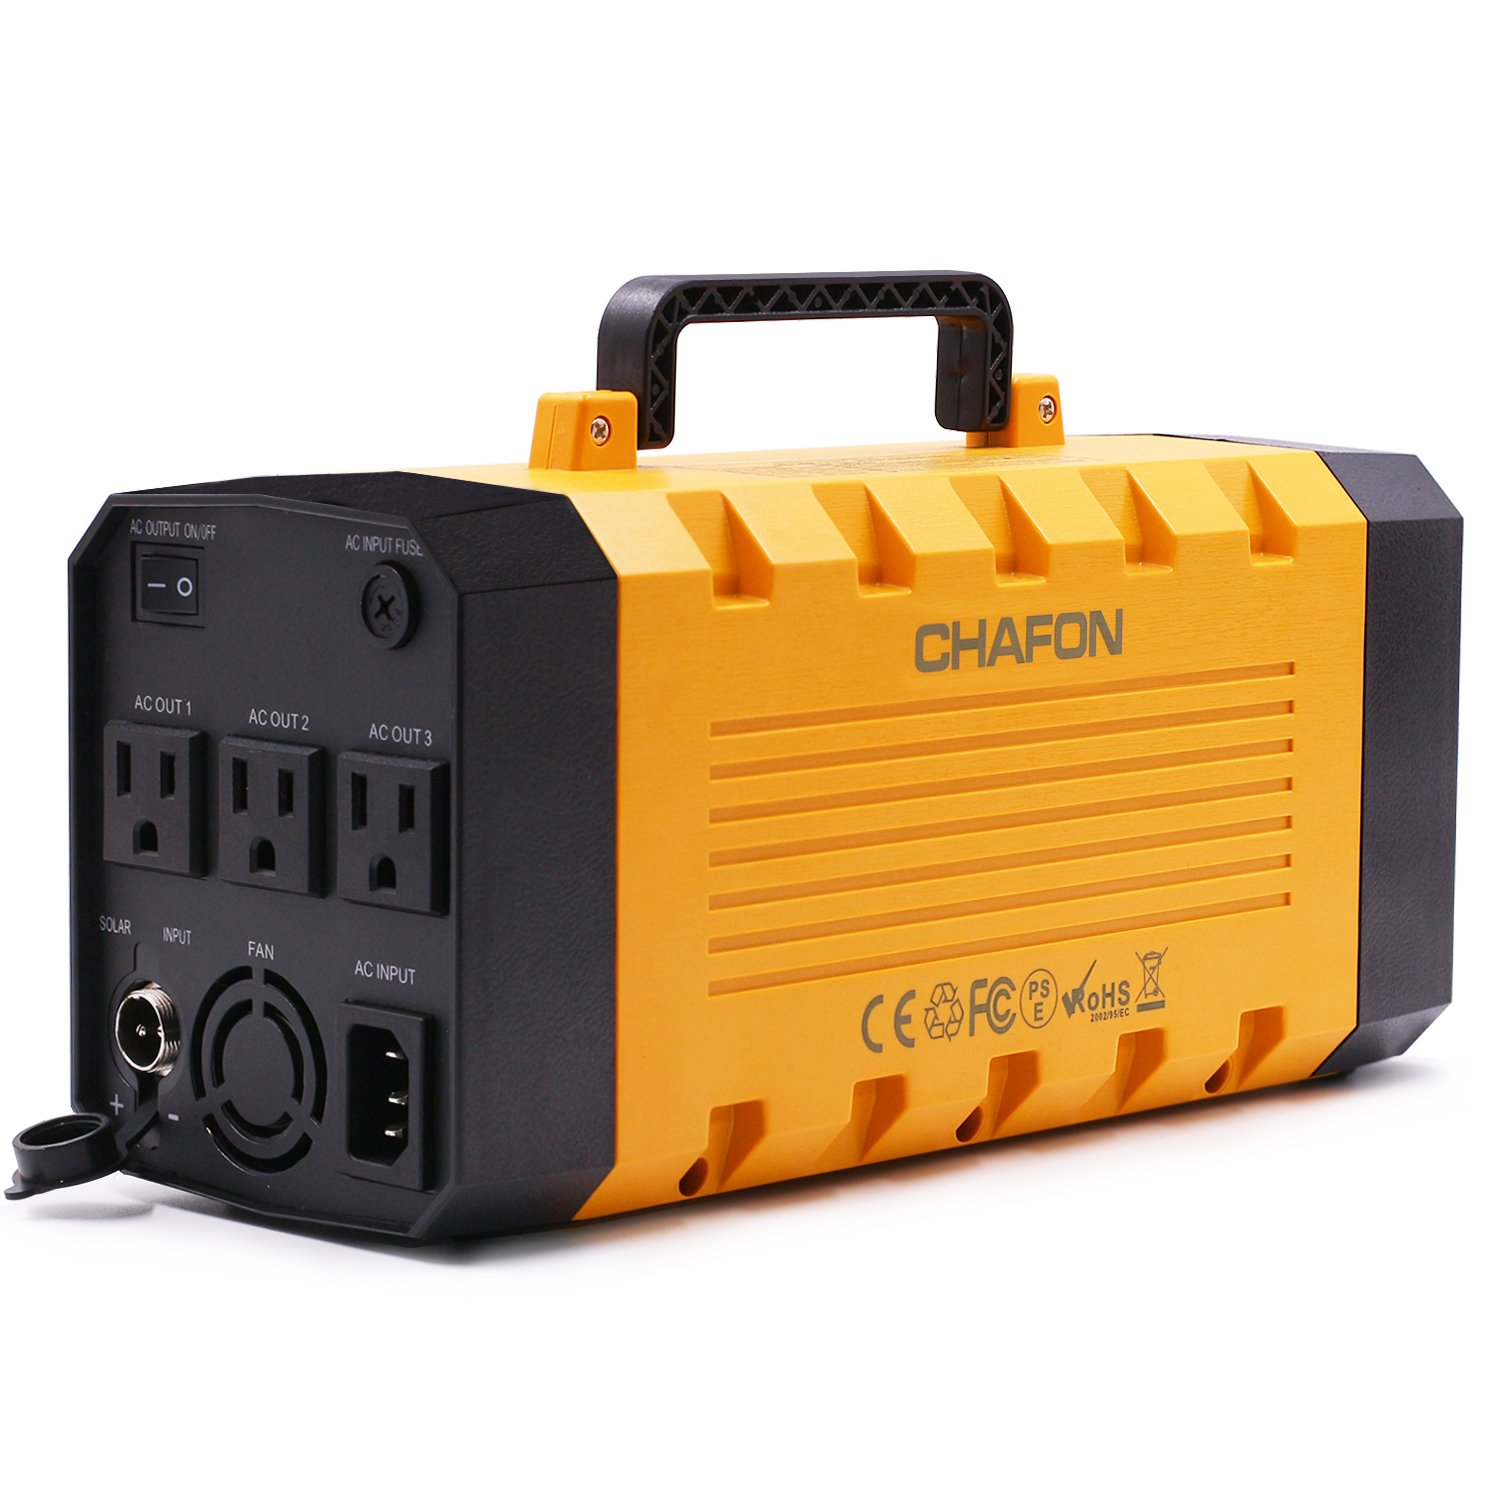 Amazon upgraded portable generator 288wh ups battery backup amazon upgraded portable generator 288wh ups battery backup rechargeable power source with 500 watt ac outlet inverter usb dc 12v outputs for buycottarizona Image collections